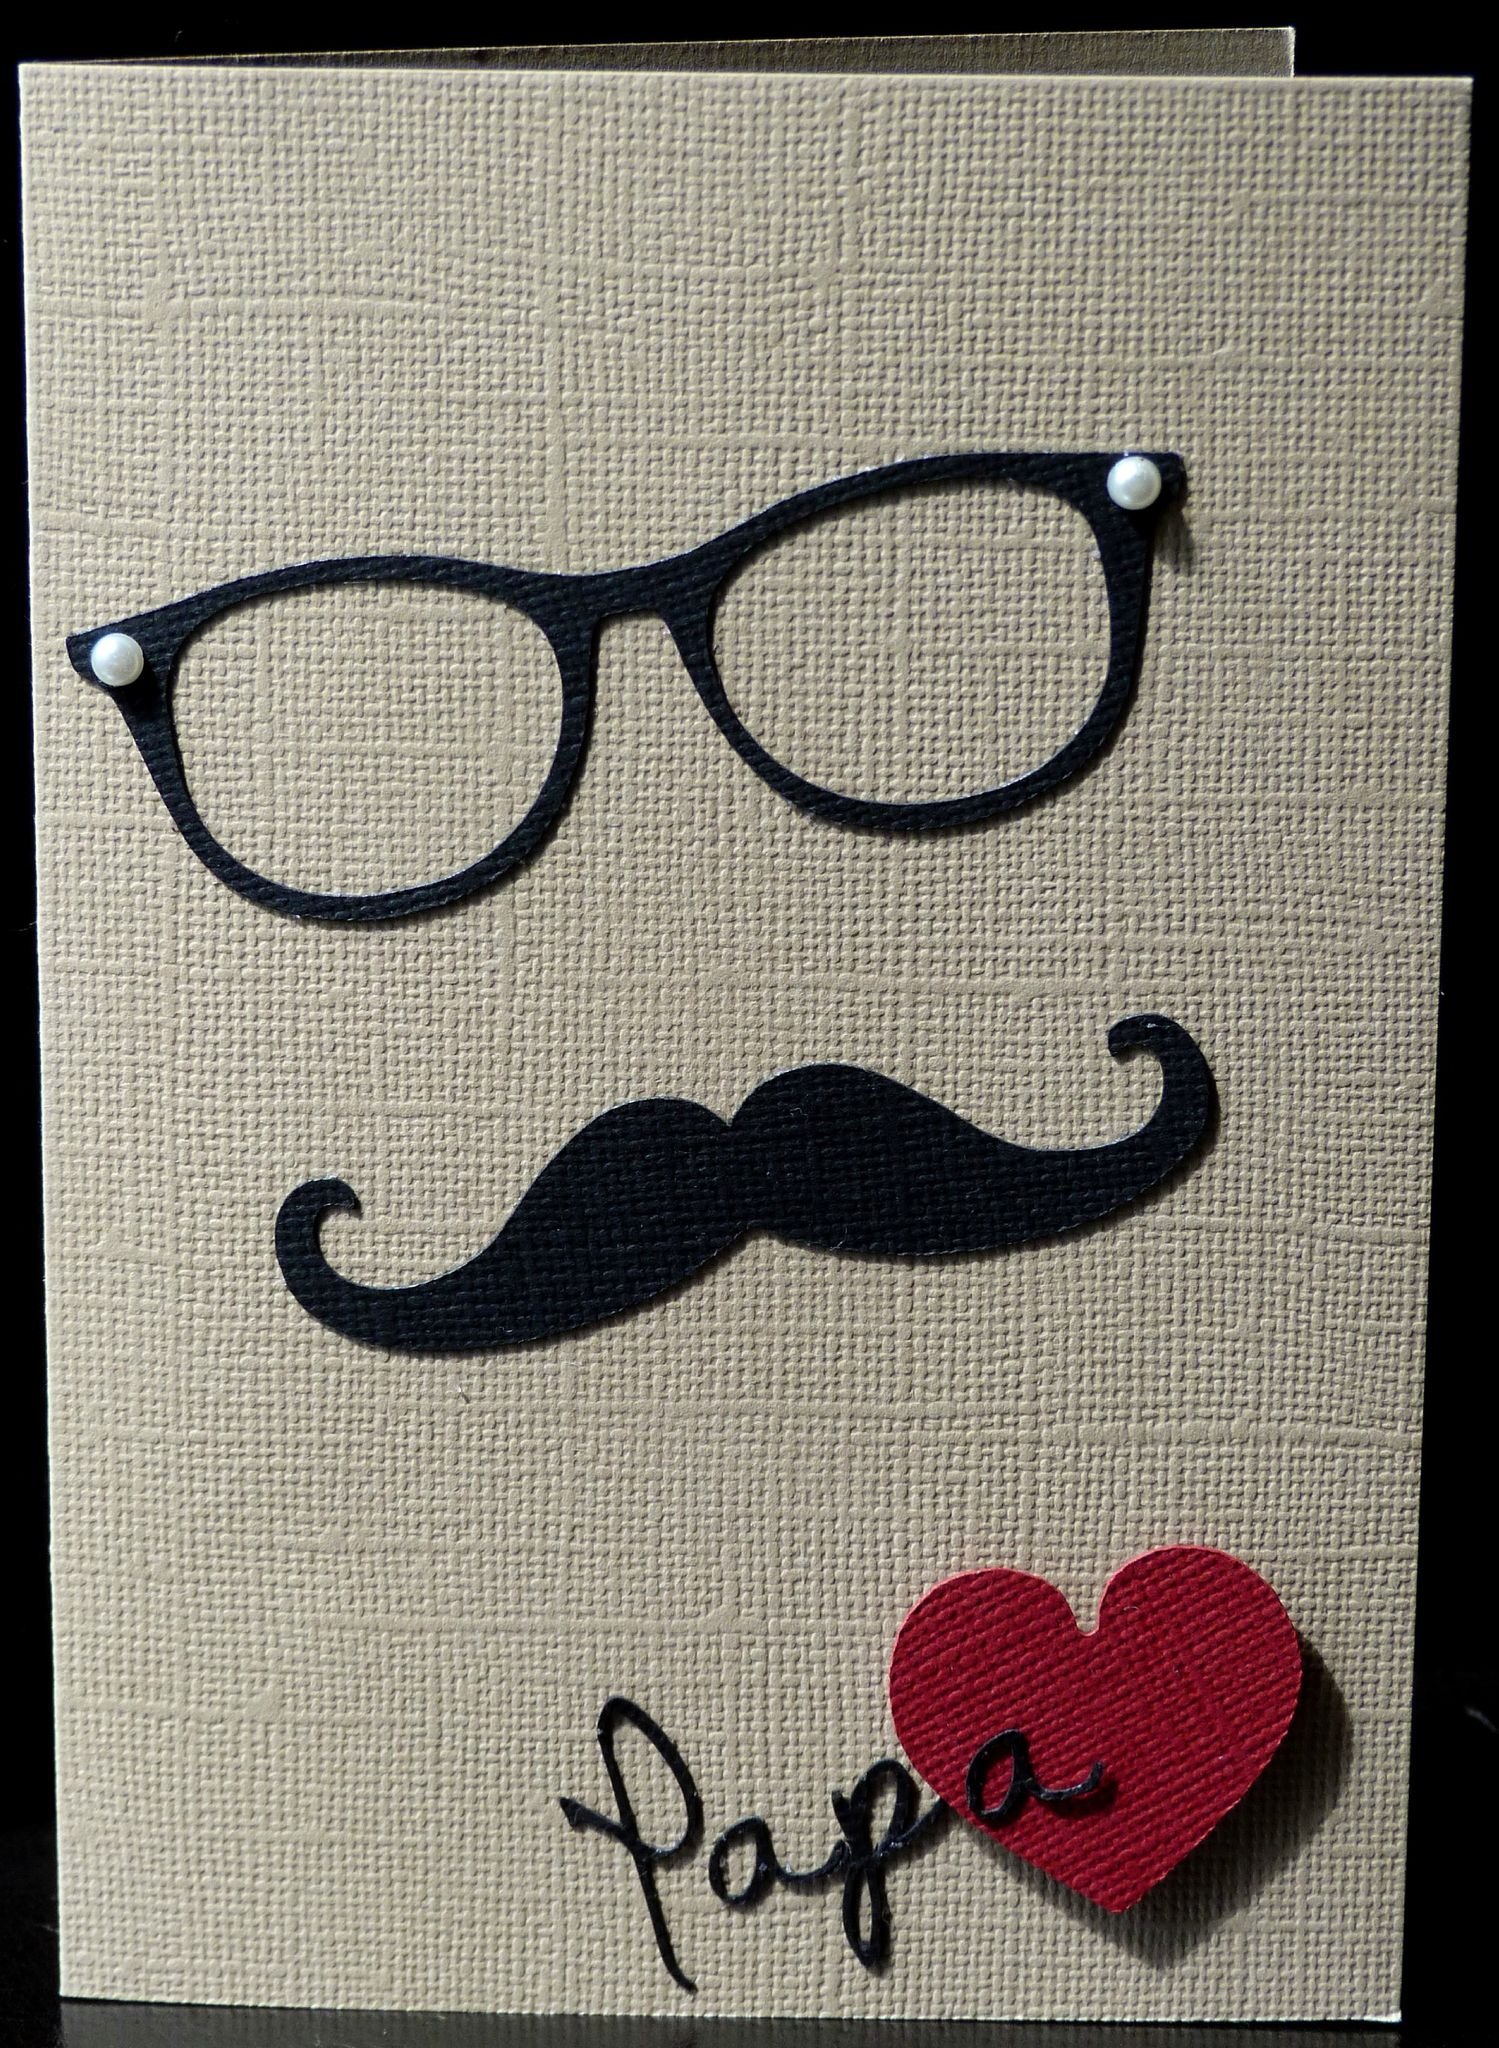 carte artisanale avec lunettes et moustaches pour la f te des p res l2mg la boutique. Black Bedroom Furniture Sets. Home Design Ideas